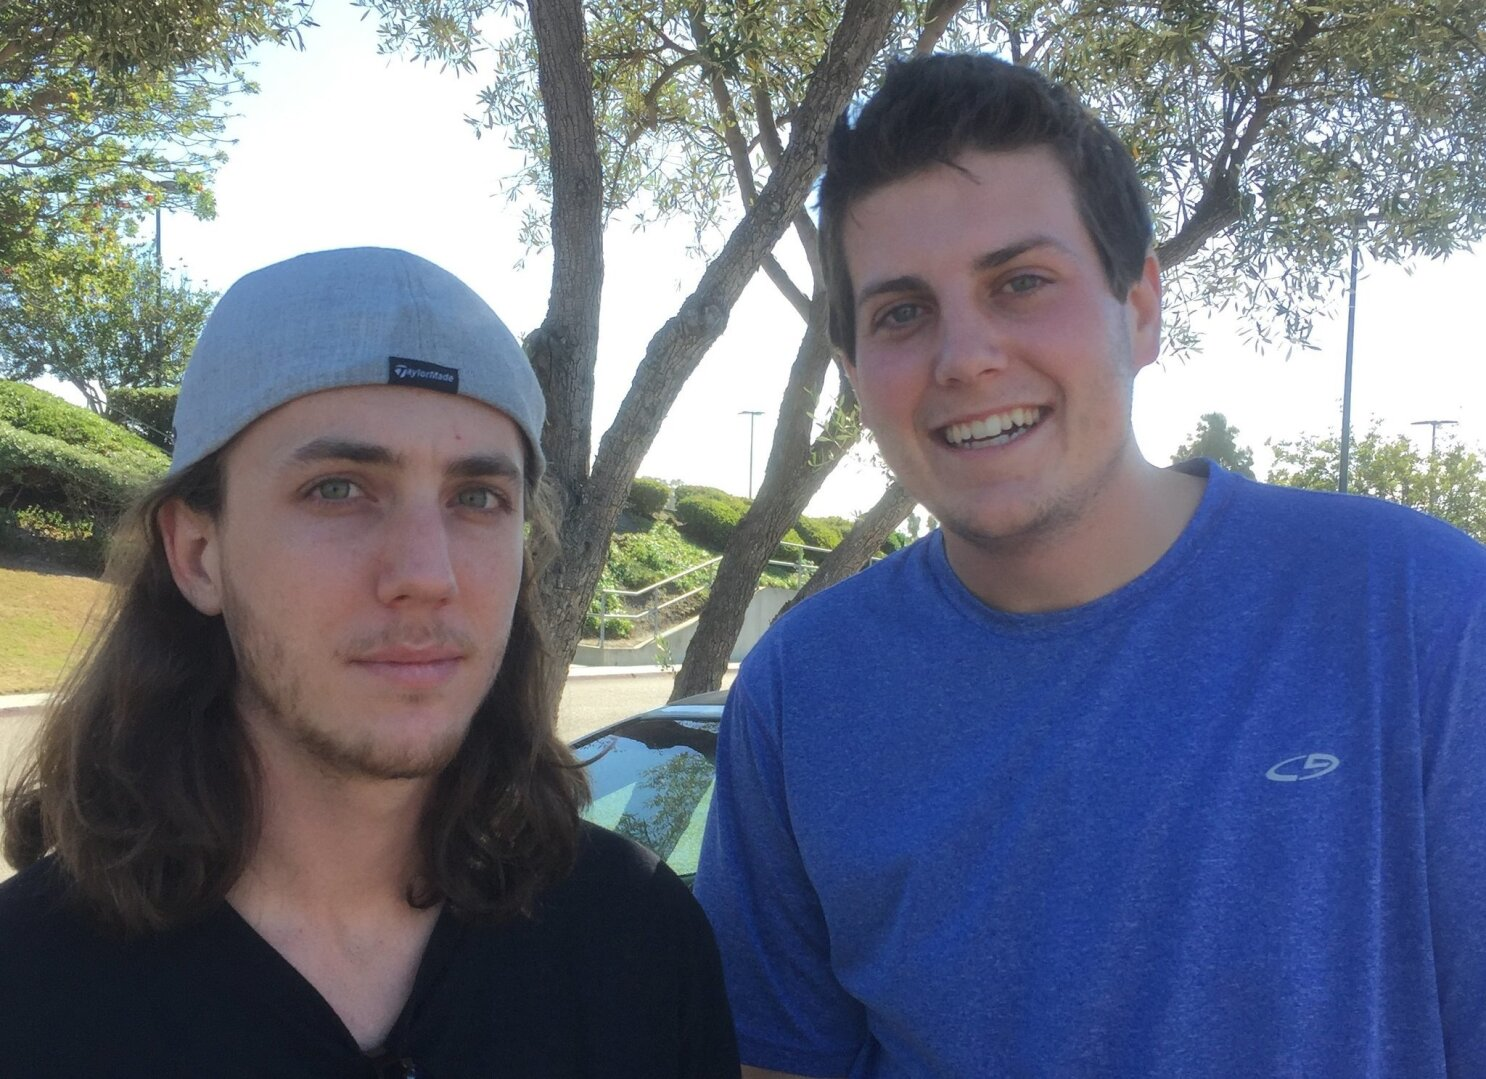 Carlsbad mom lost 2 sons in Texas campsite massacre - The